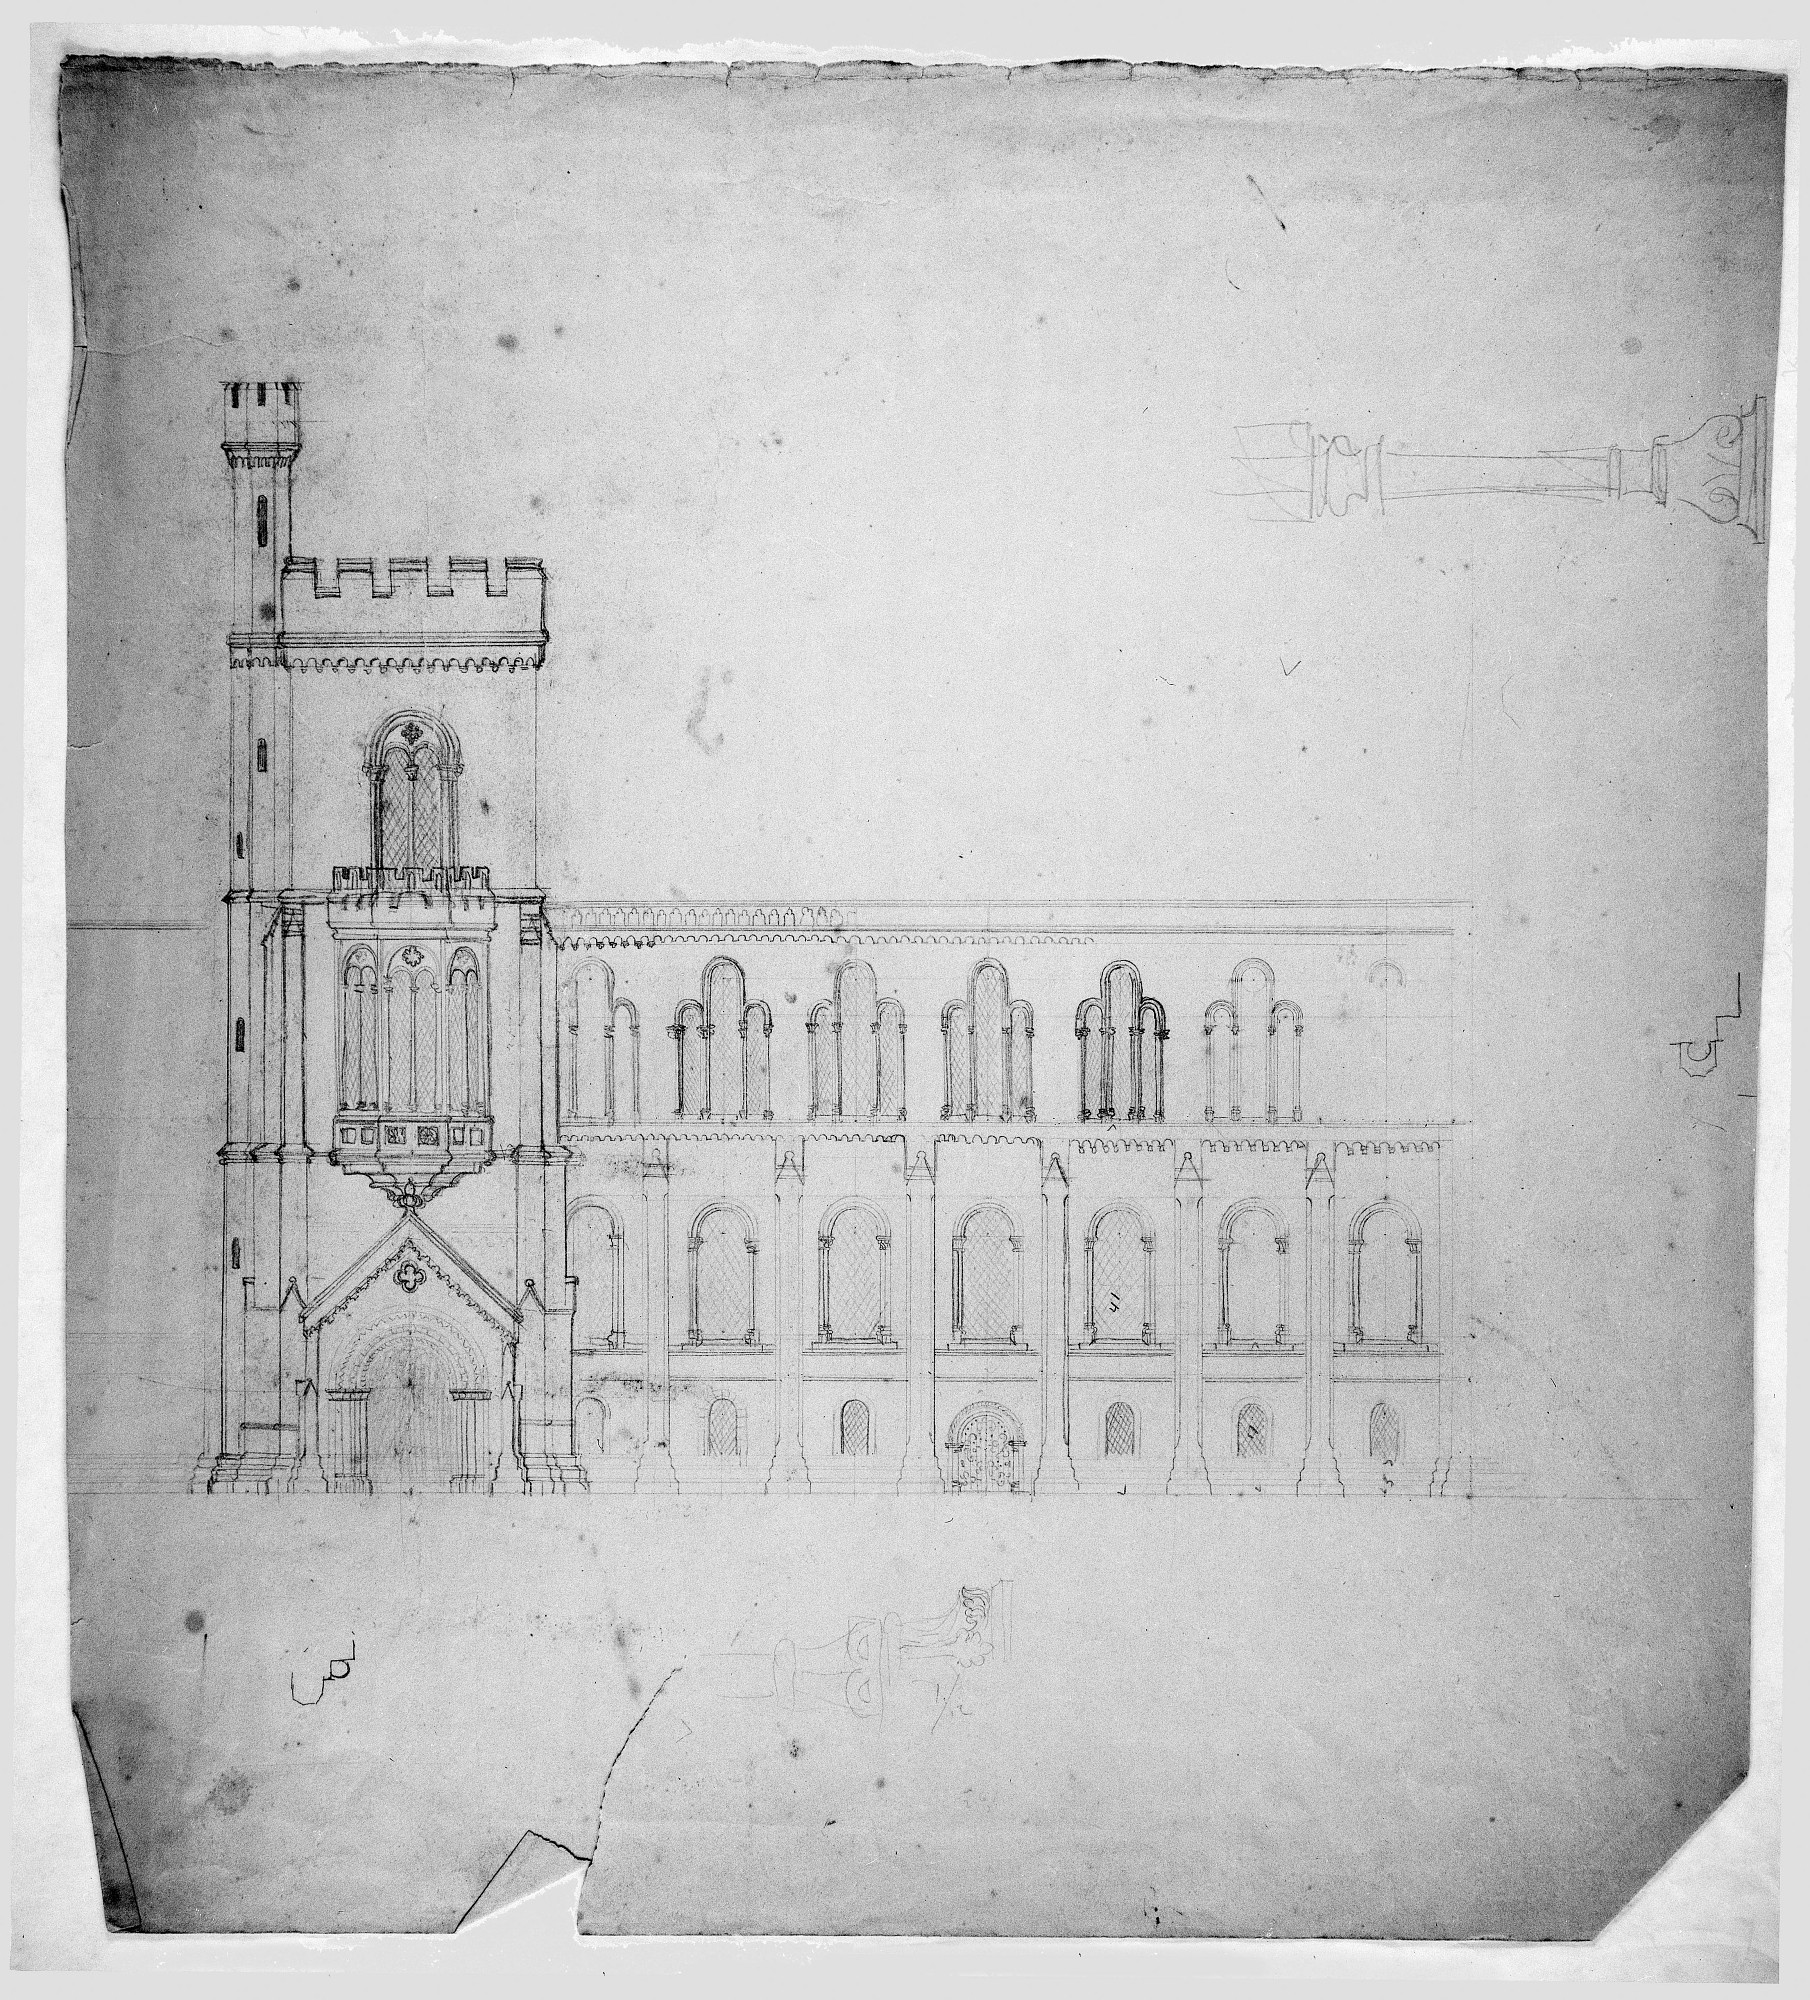 James Renwick Jr. Drawing of the Smithsonian Castle